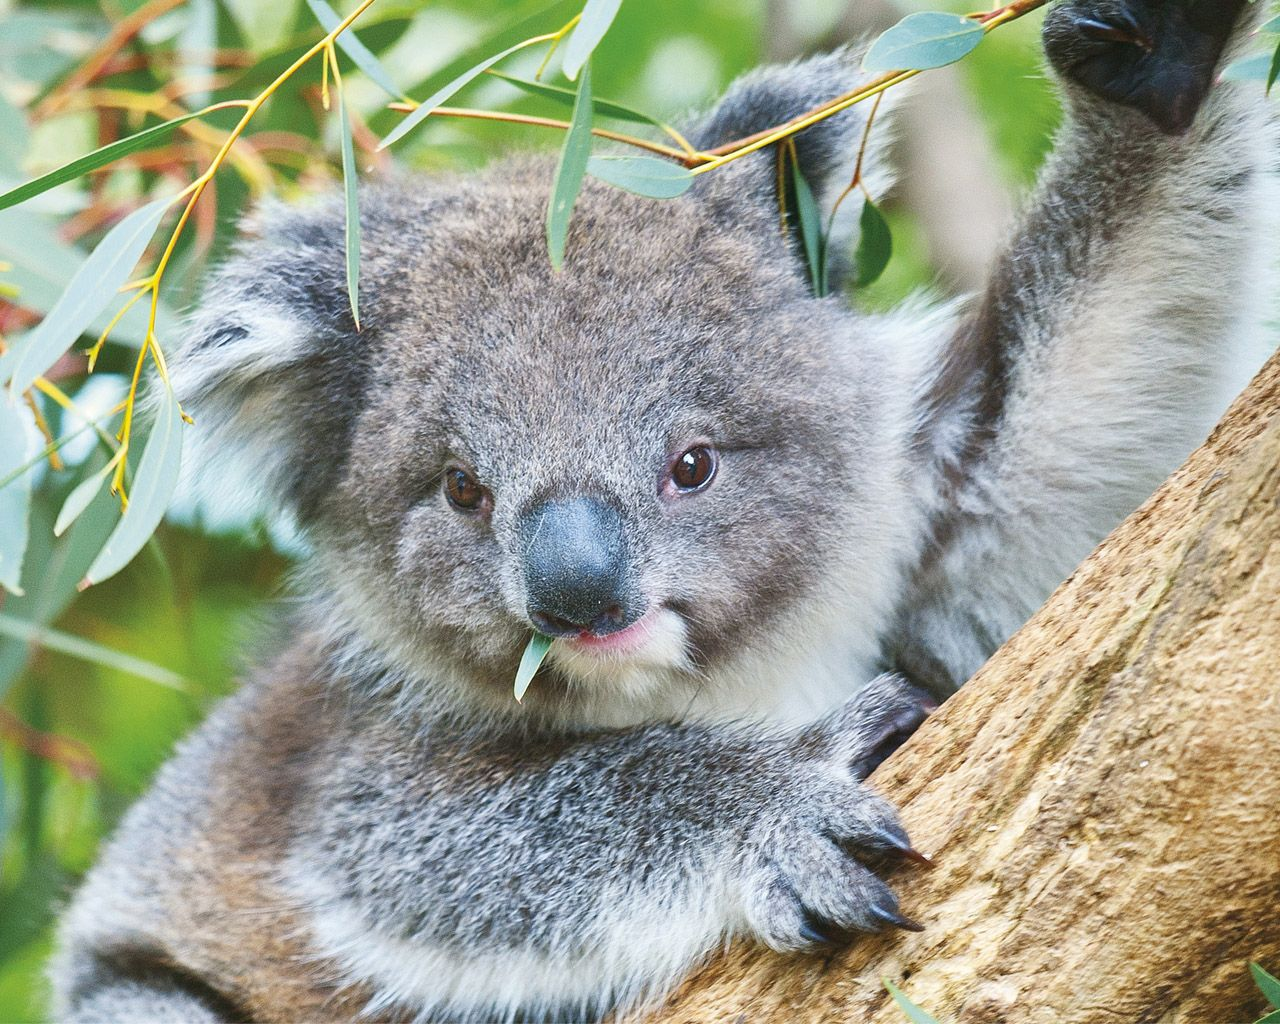 Koalas D Need To Go To Australia But Then I Might Never Come Back Lol